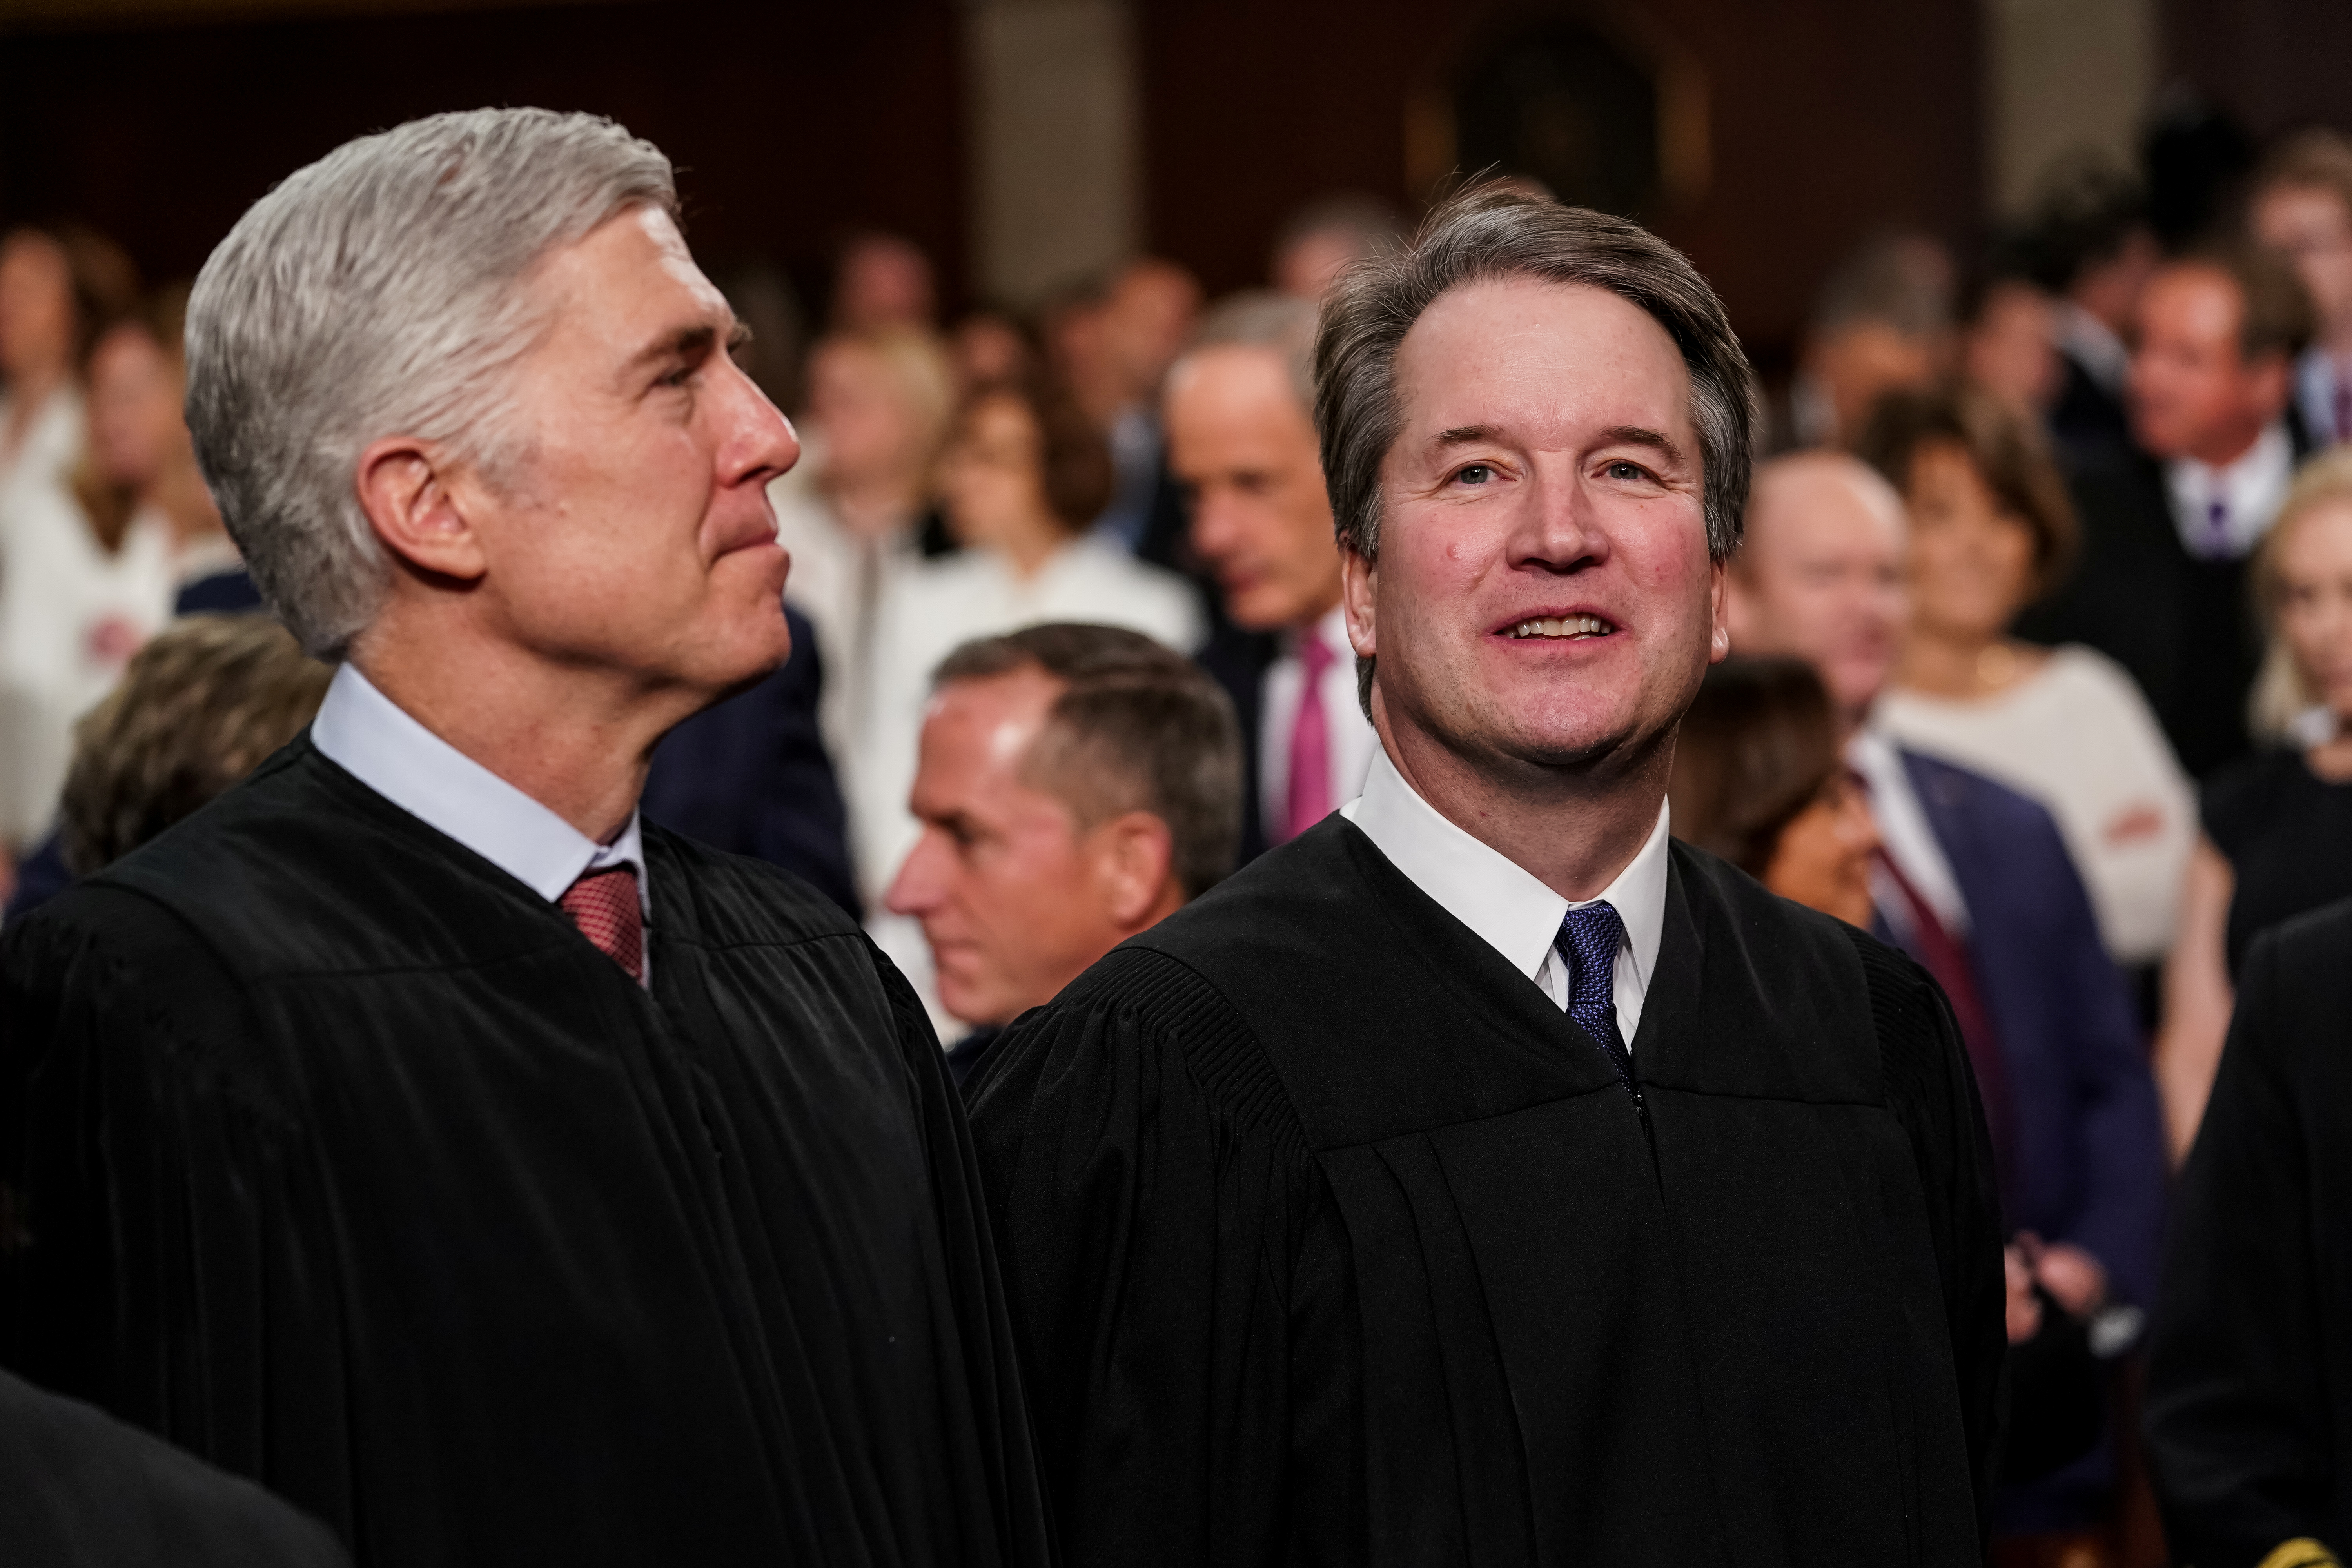 Supreme Court justices Neil Gorsuch, left, and Brett Kavanaugh at the Capitol in Washington